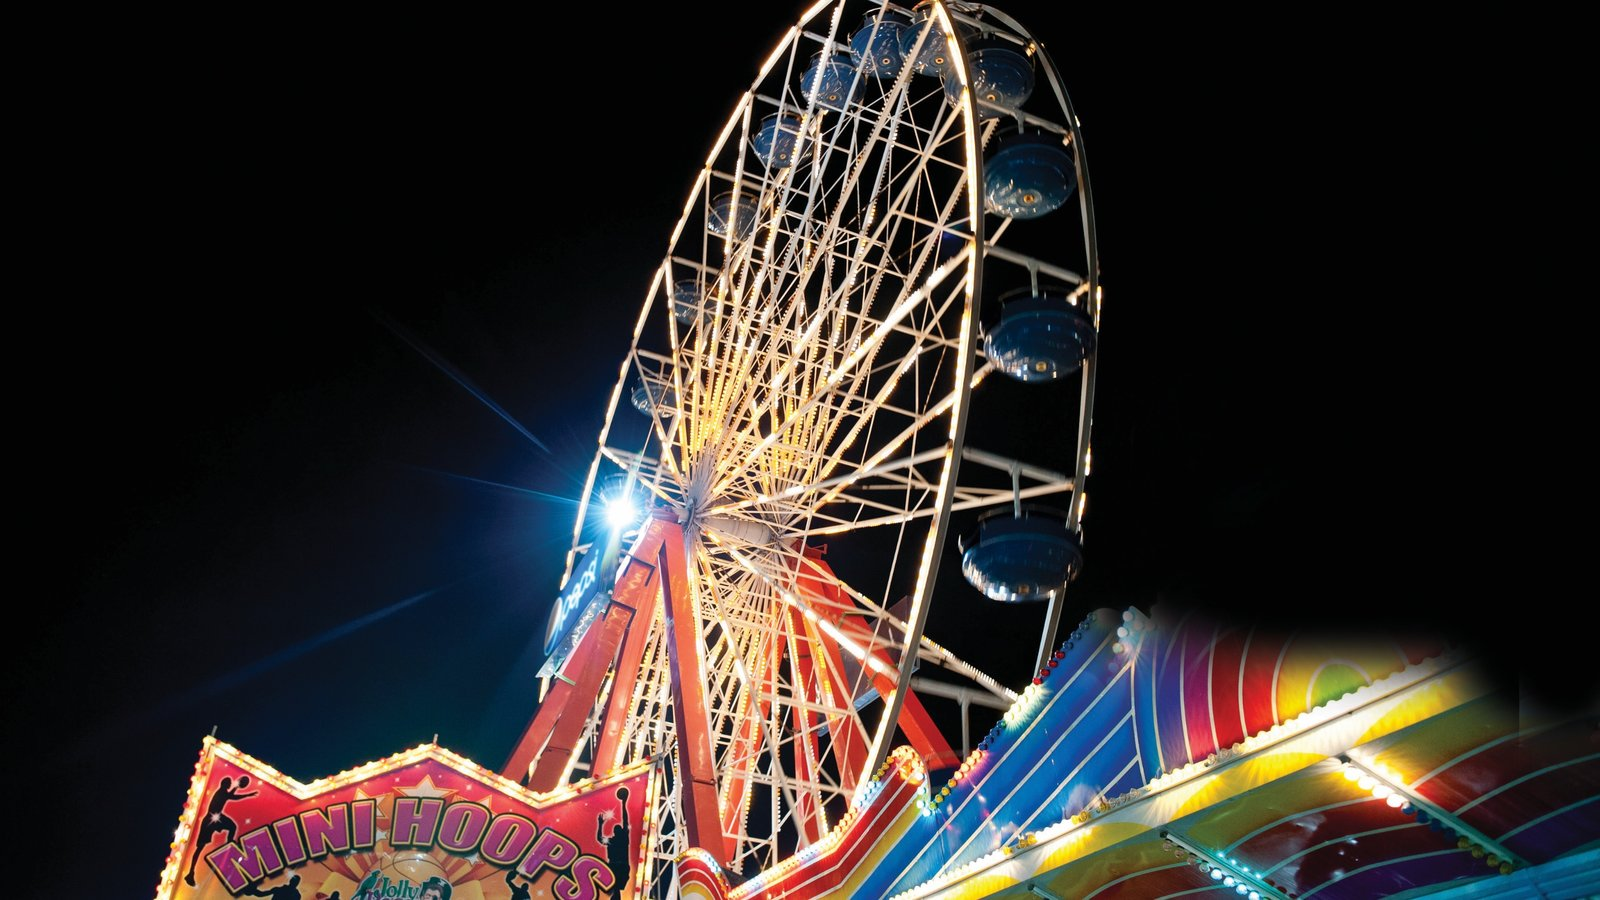 Ocean City showing rides and night scenes